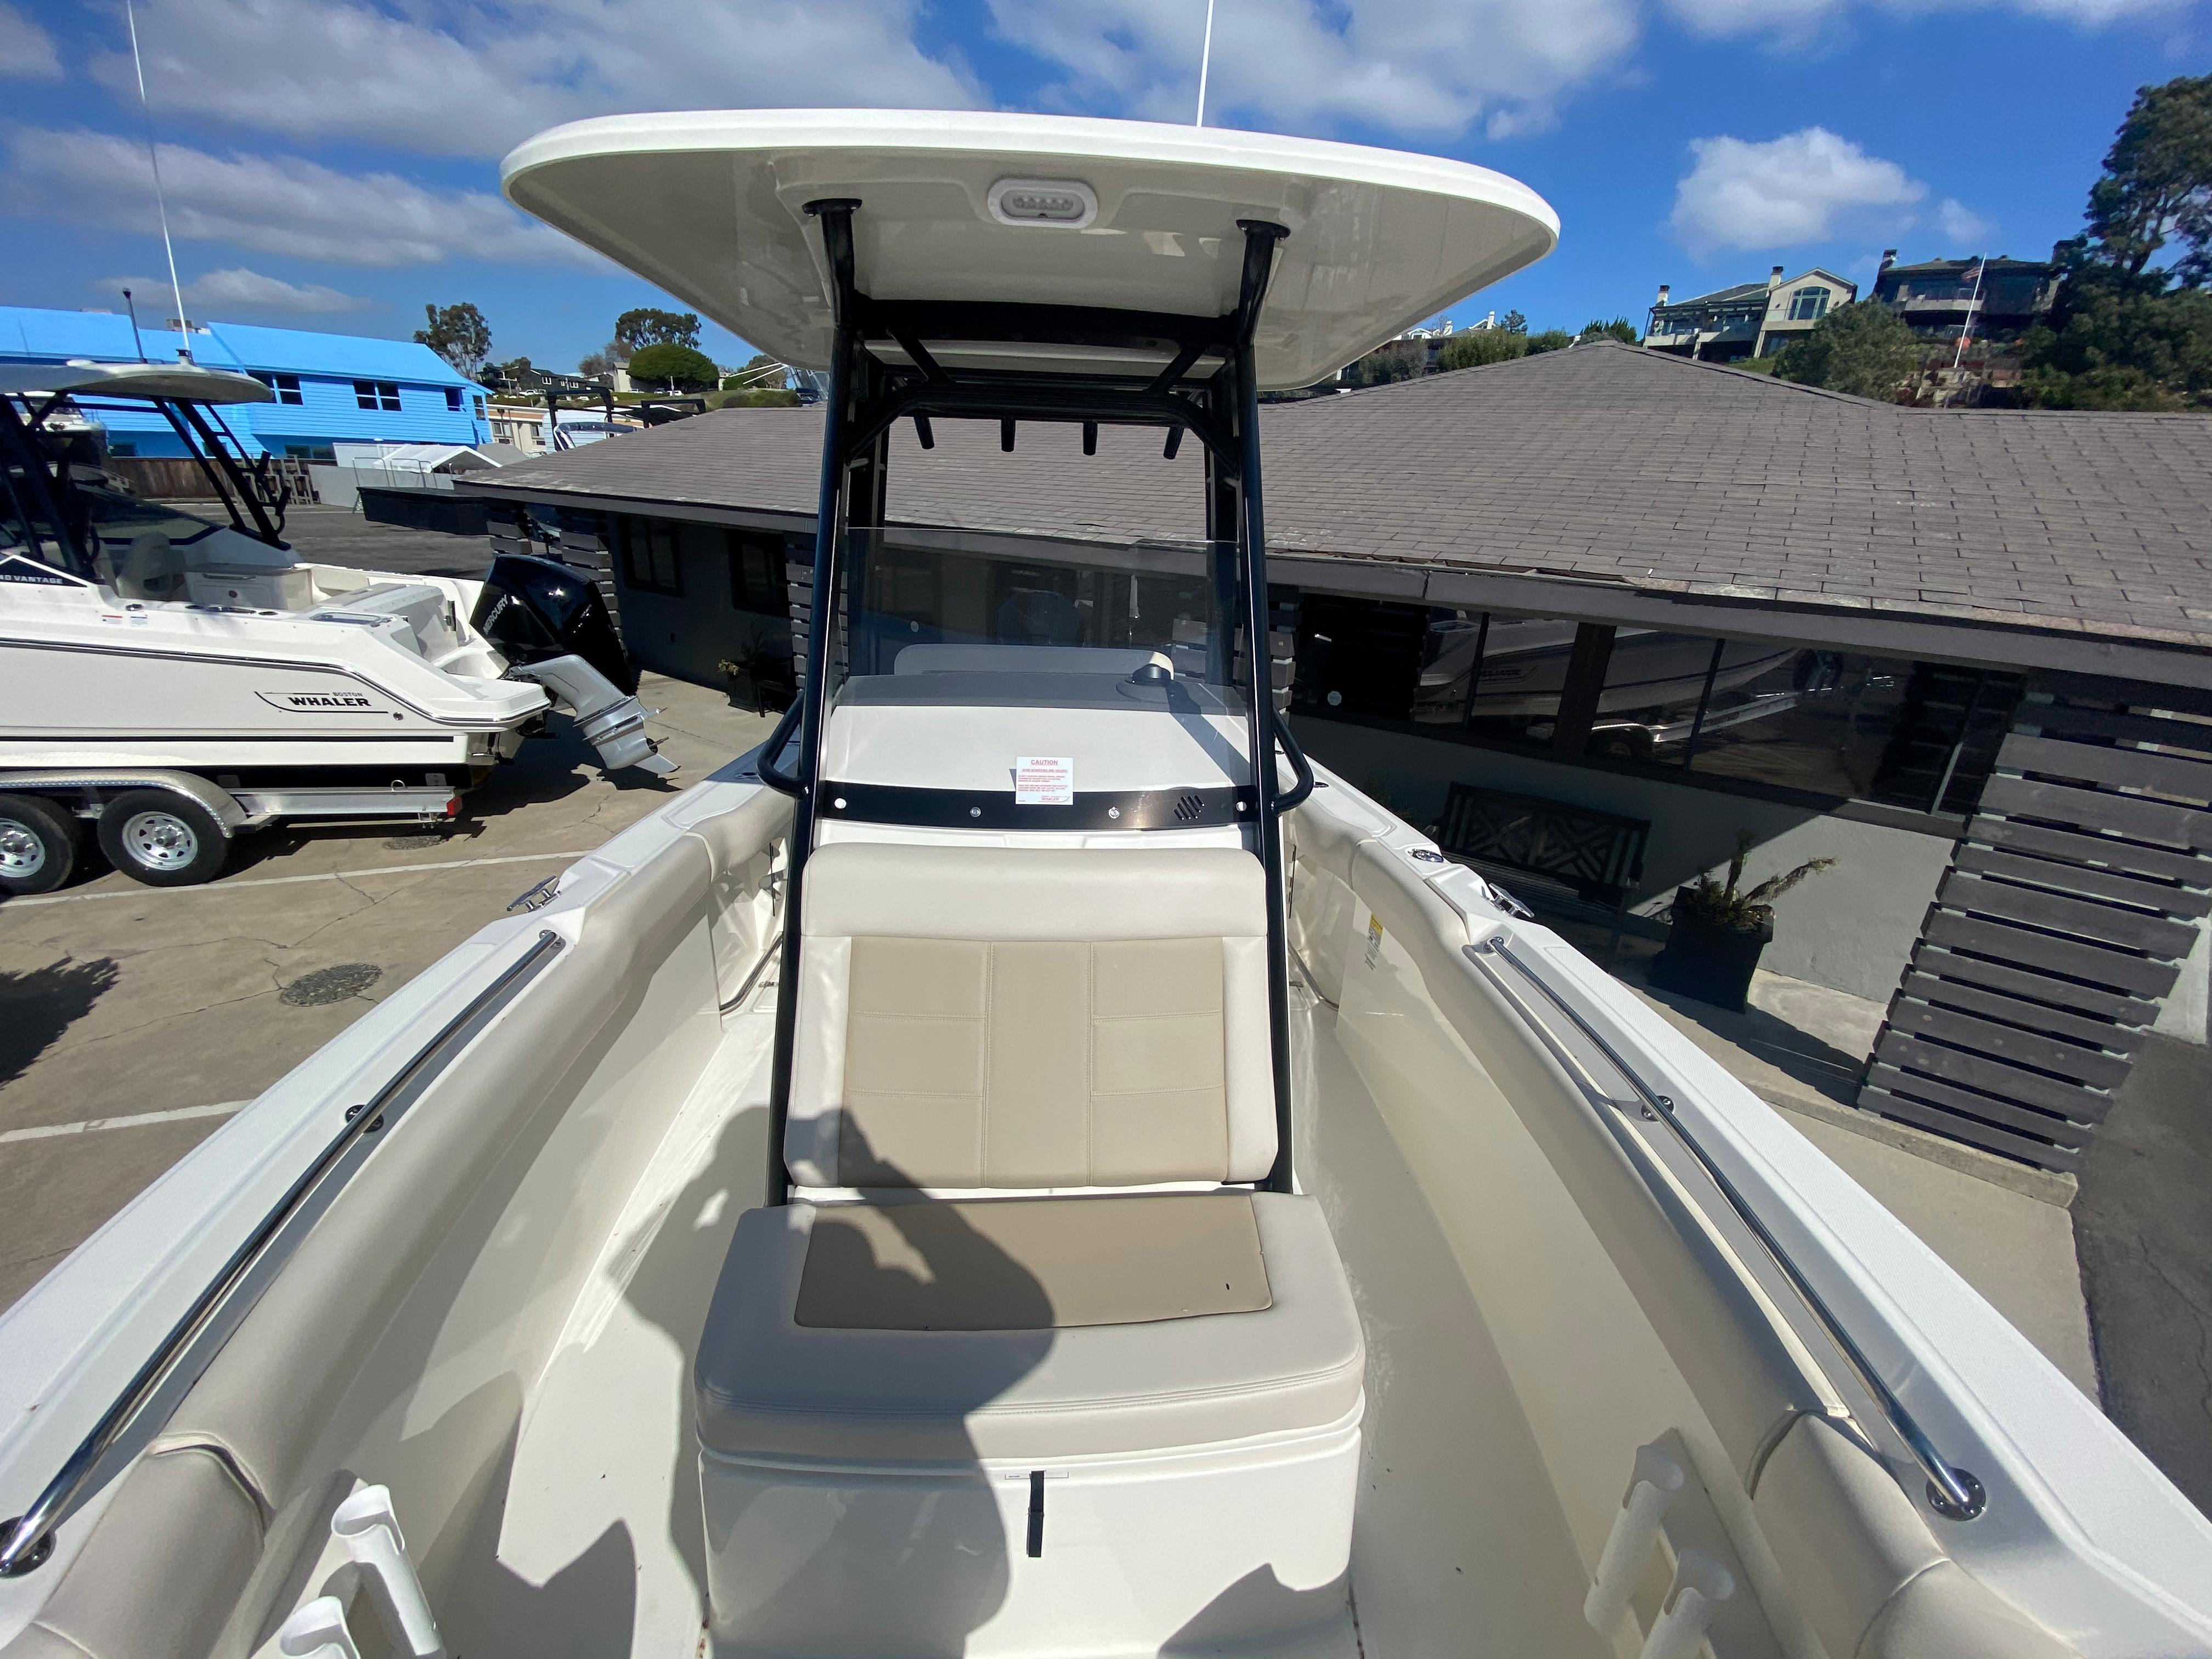 2021 Boston Whaler 230 Outrage #BW1448L inventory image at Sun Country Coastal in Newport Beach